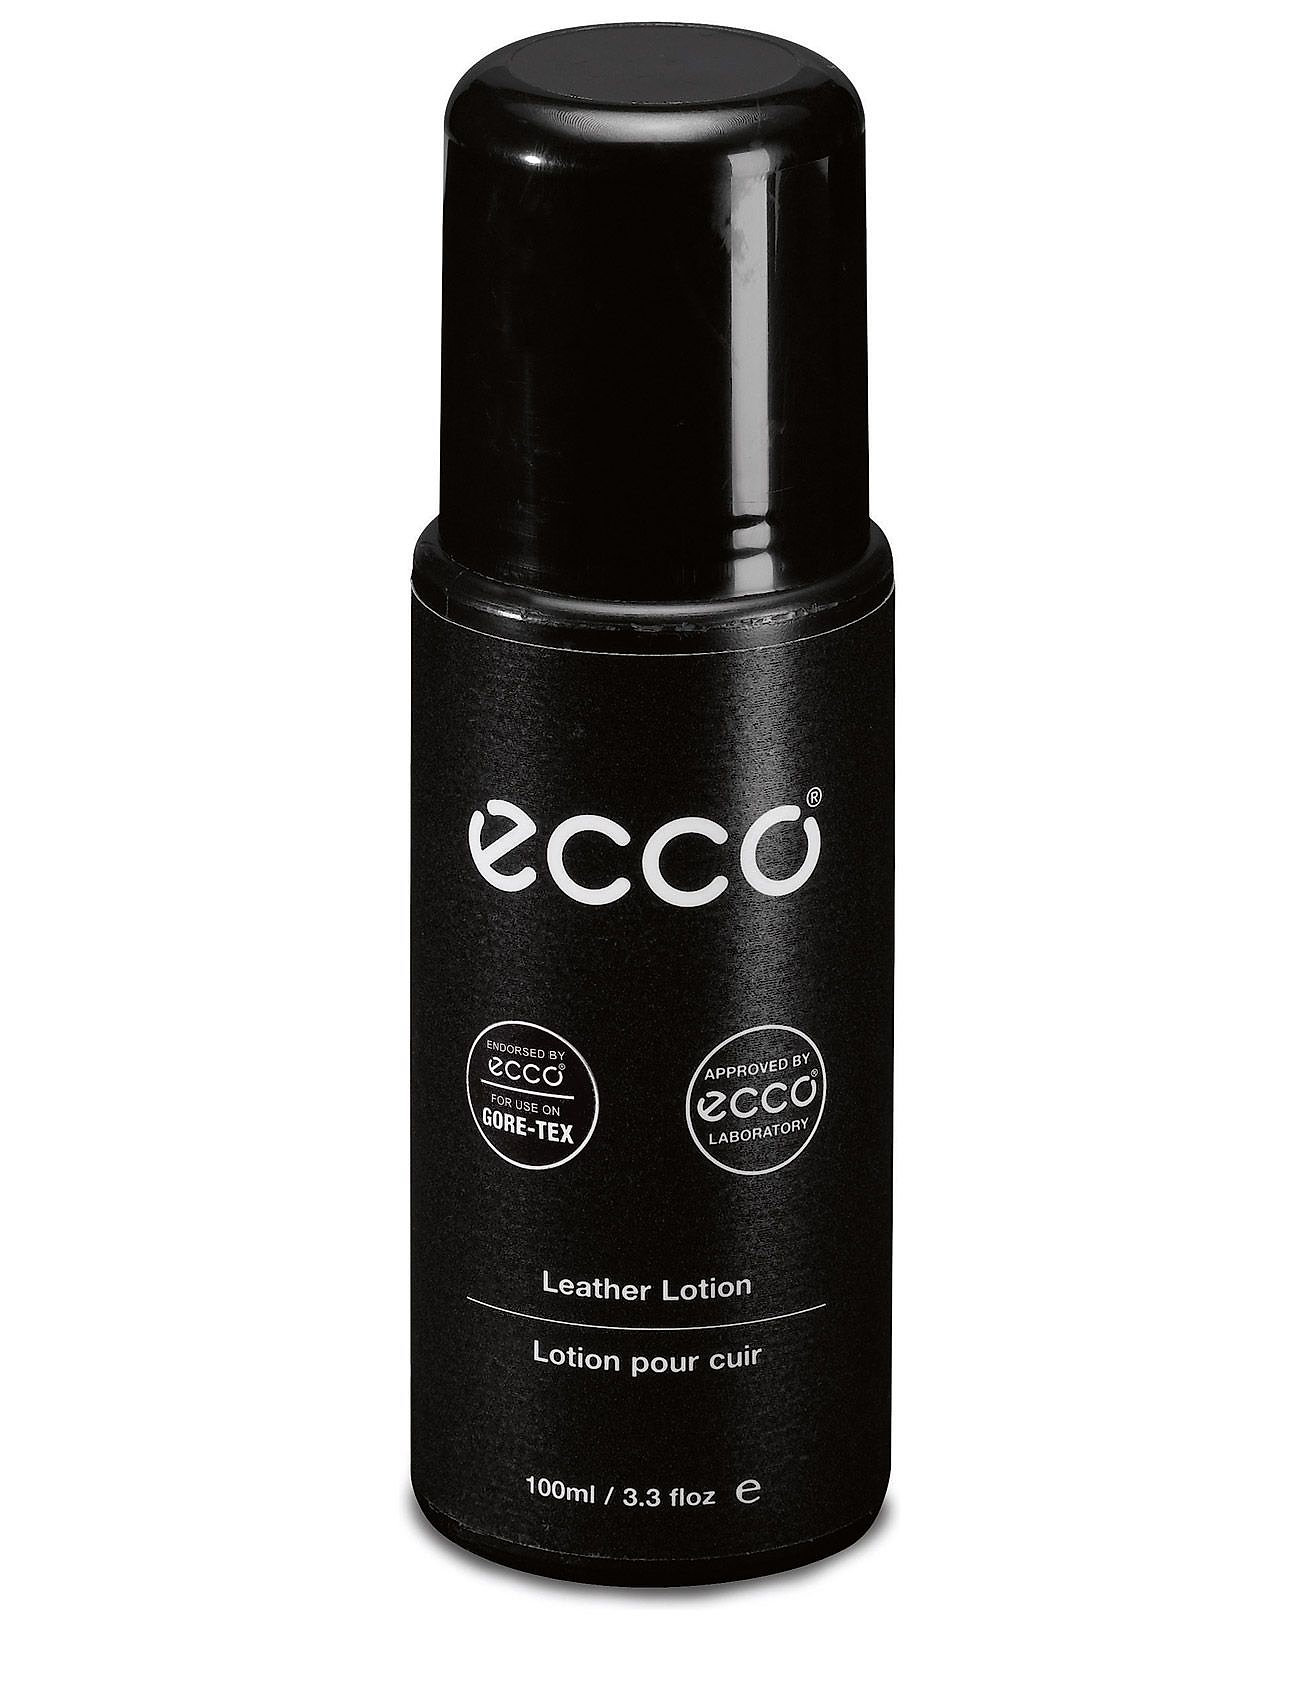 ECCO Shoe Care Care - TRANSPARENT